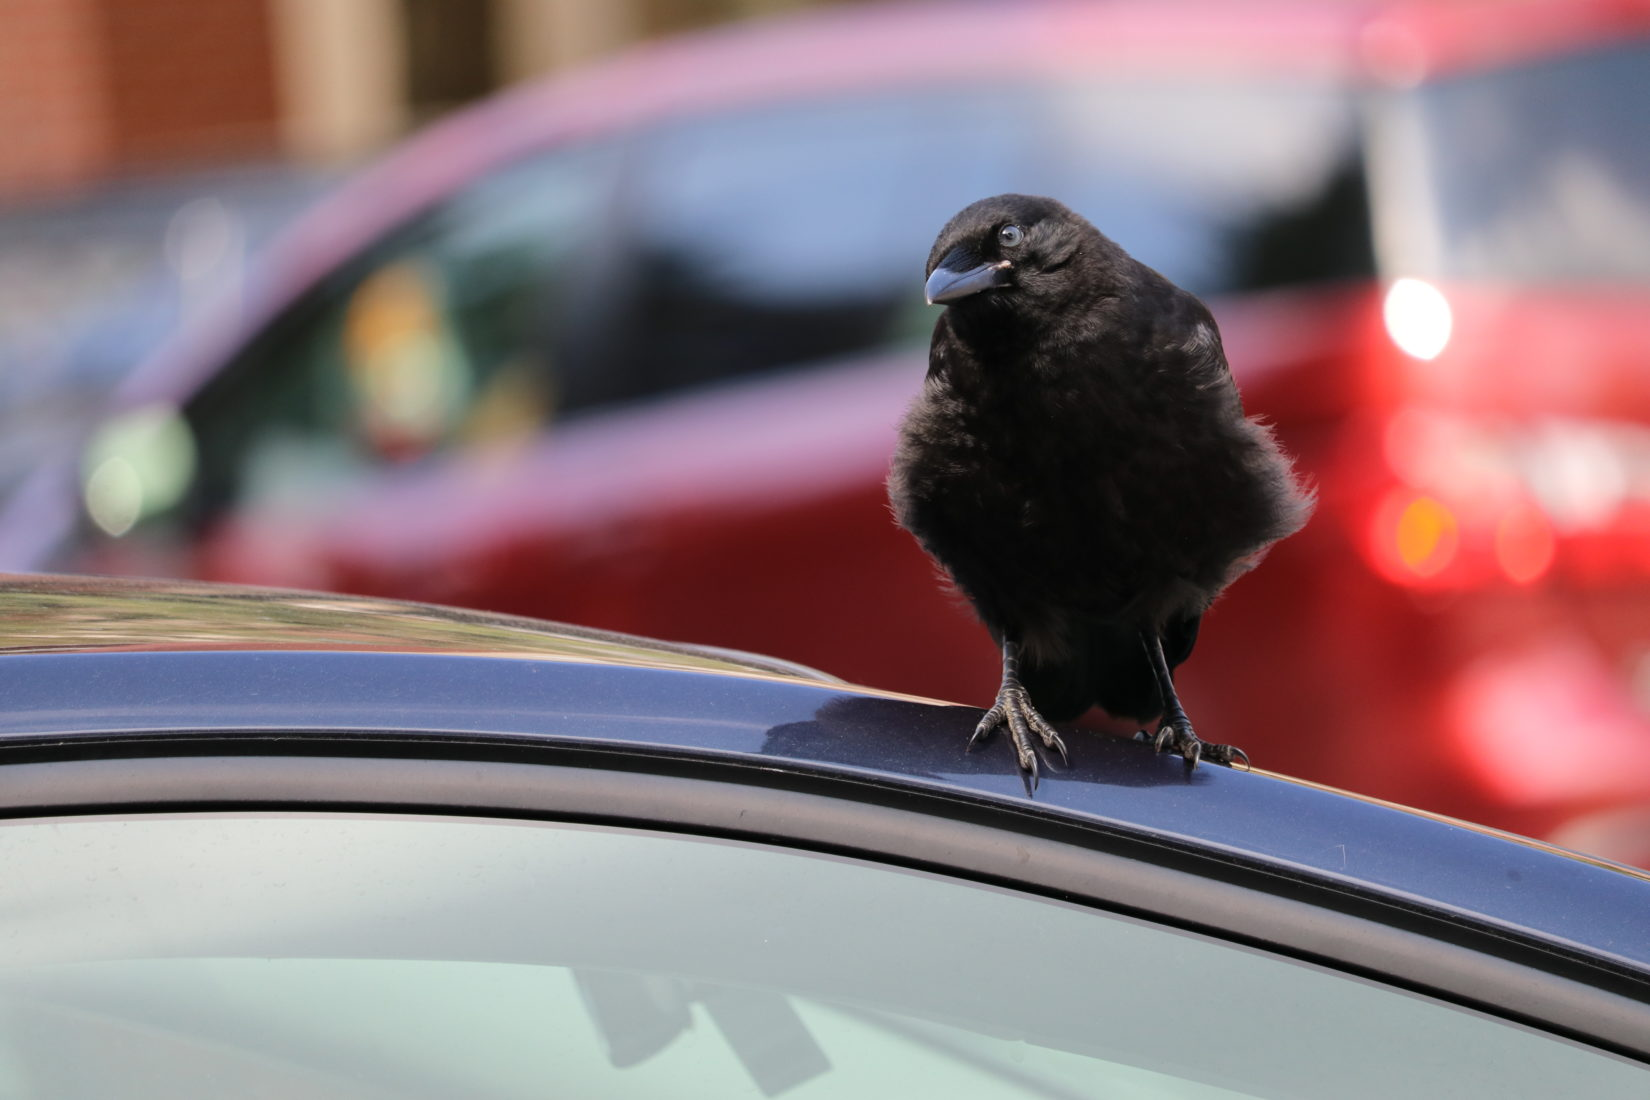 Crow standing on car